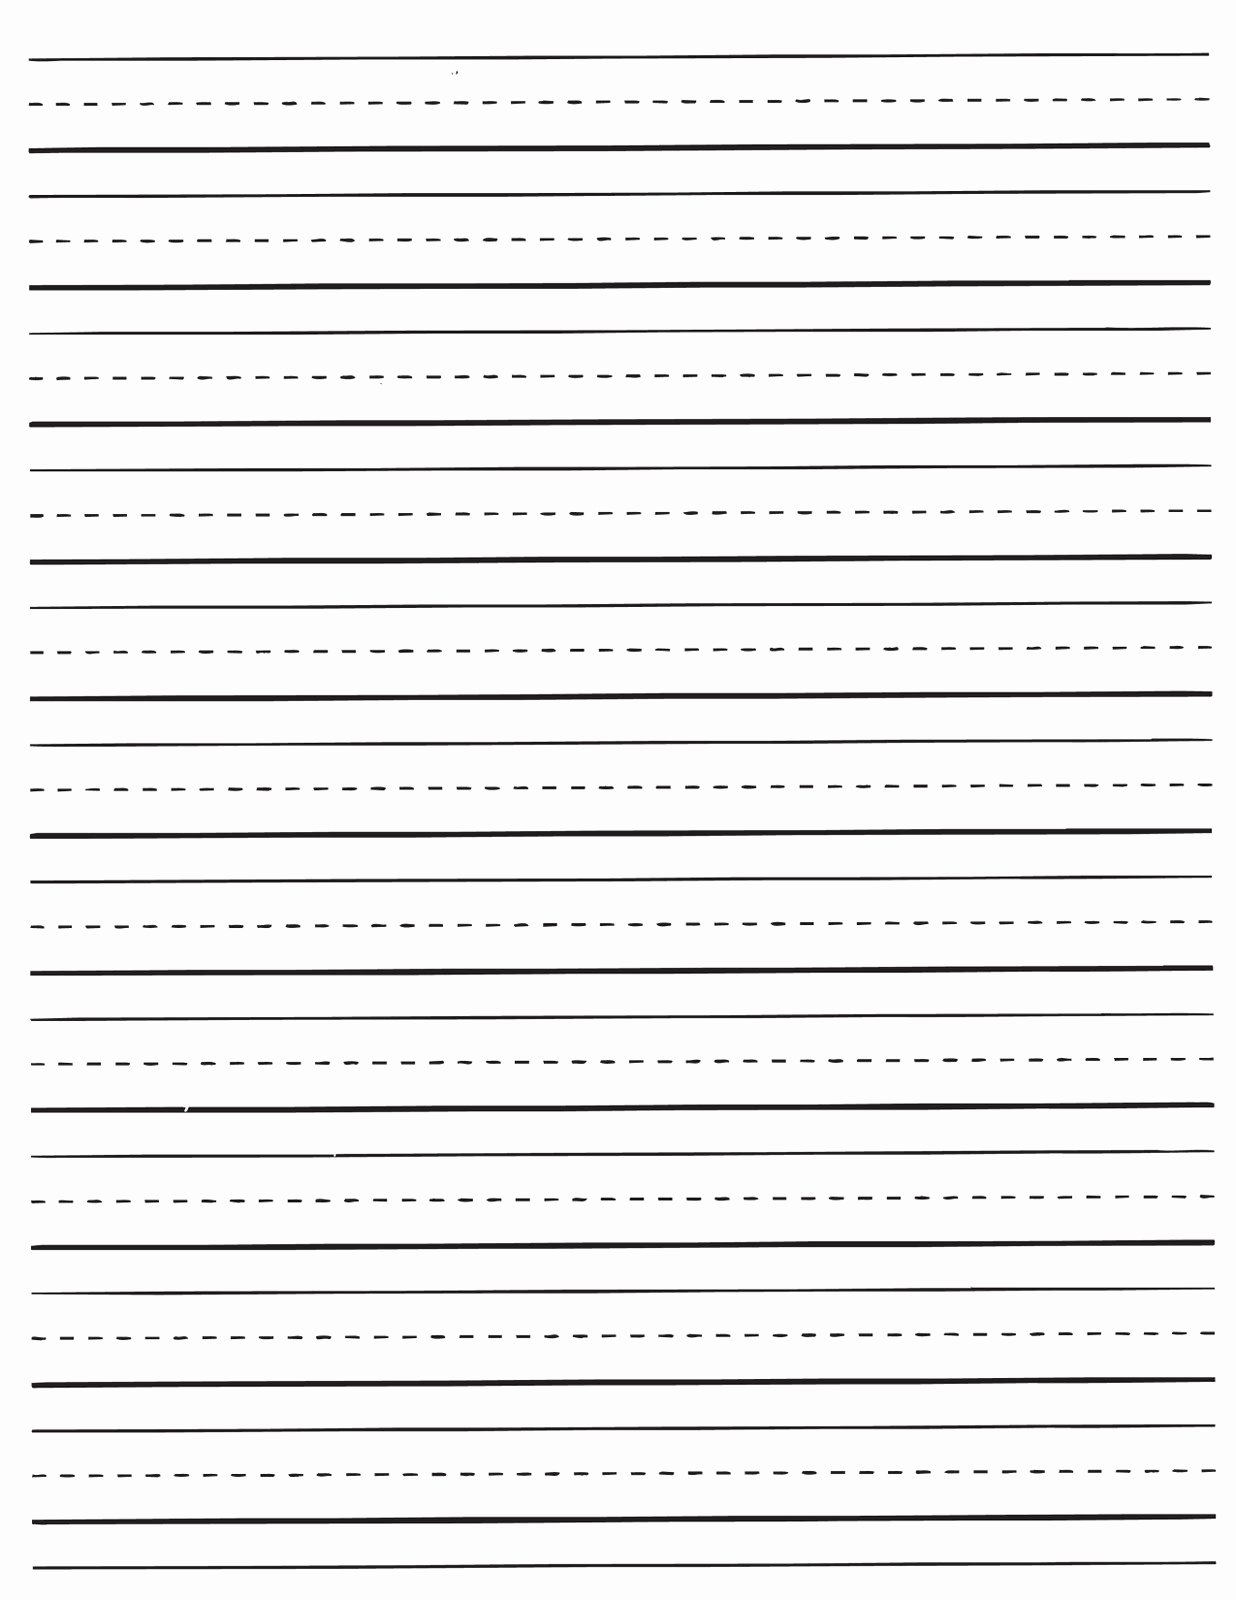 Kindergarten Writing Paper Printable Best Of Printable Dotted Lined Paper Printable Pages